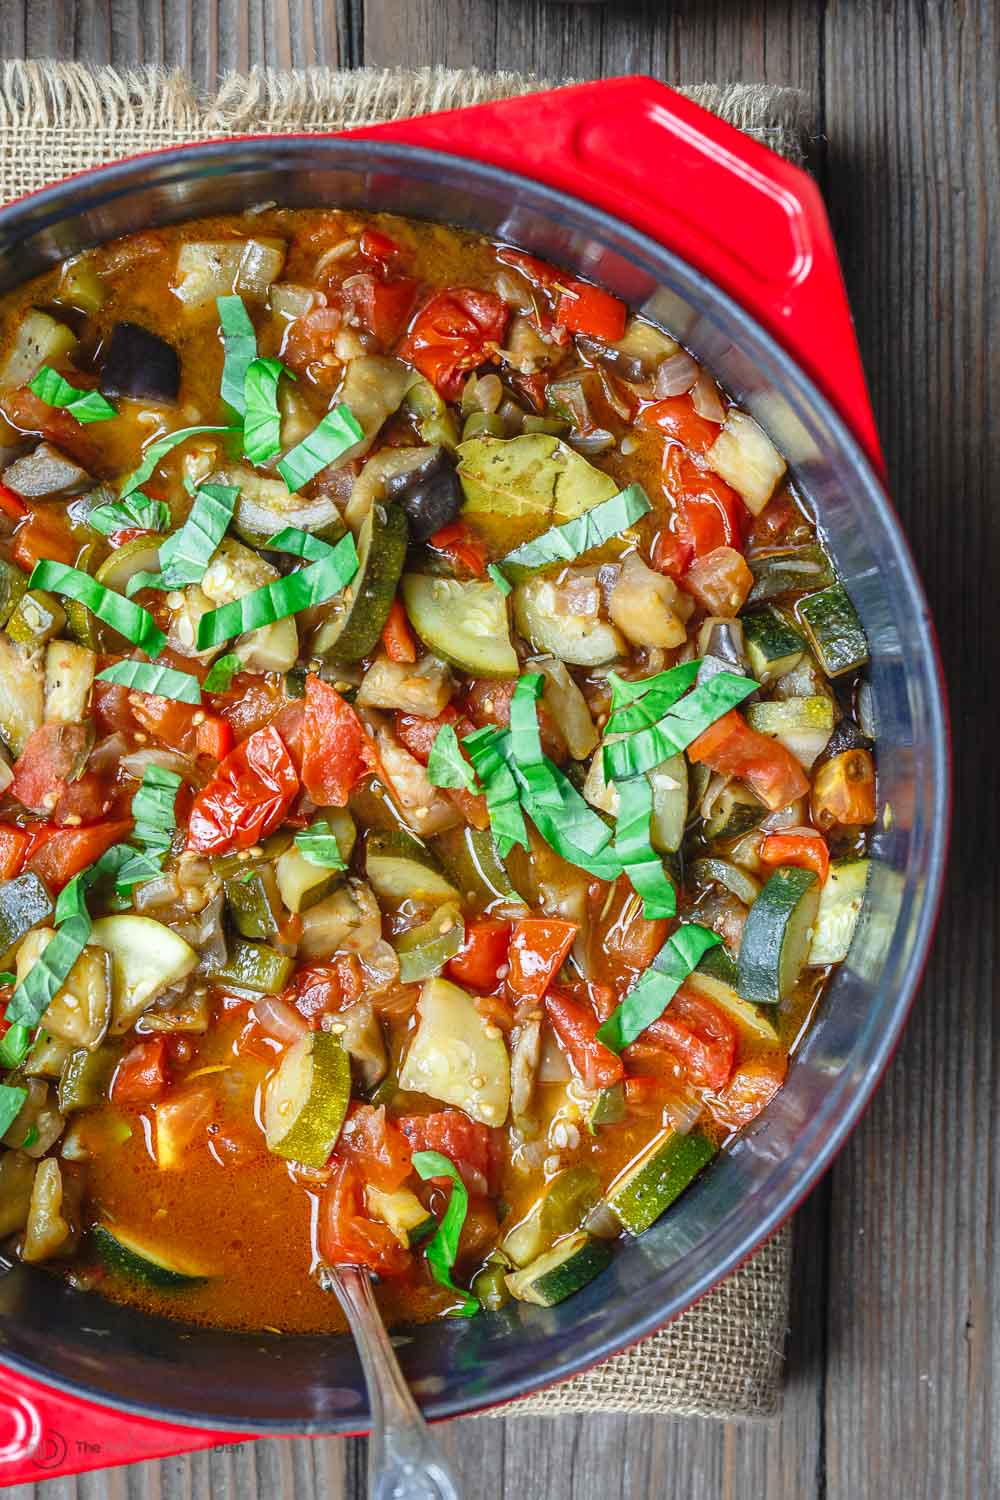 Easy Ratatouille Recipe | The Mediterranean Dish. A simple, hearty, and flavor packed ratatouille made in just one pot. Recipe comes with tips for best ratatouille, how to serve ratatouille and more. The perfect weeknight meal from themediterraneandish.com. #ratatouille #easyrecipe #mediterraneandiet #mediterraneanrecipe #vegan #veganrecipes #vegetarian #vegetarianrecipes #stew #zucchinirecipes #eggplantrecipes #glutenfree #glutenfreerecipes